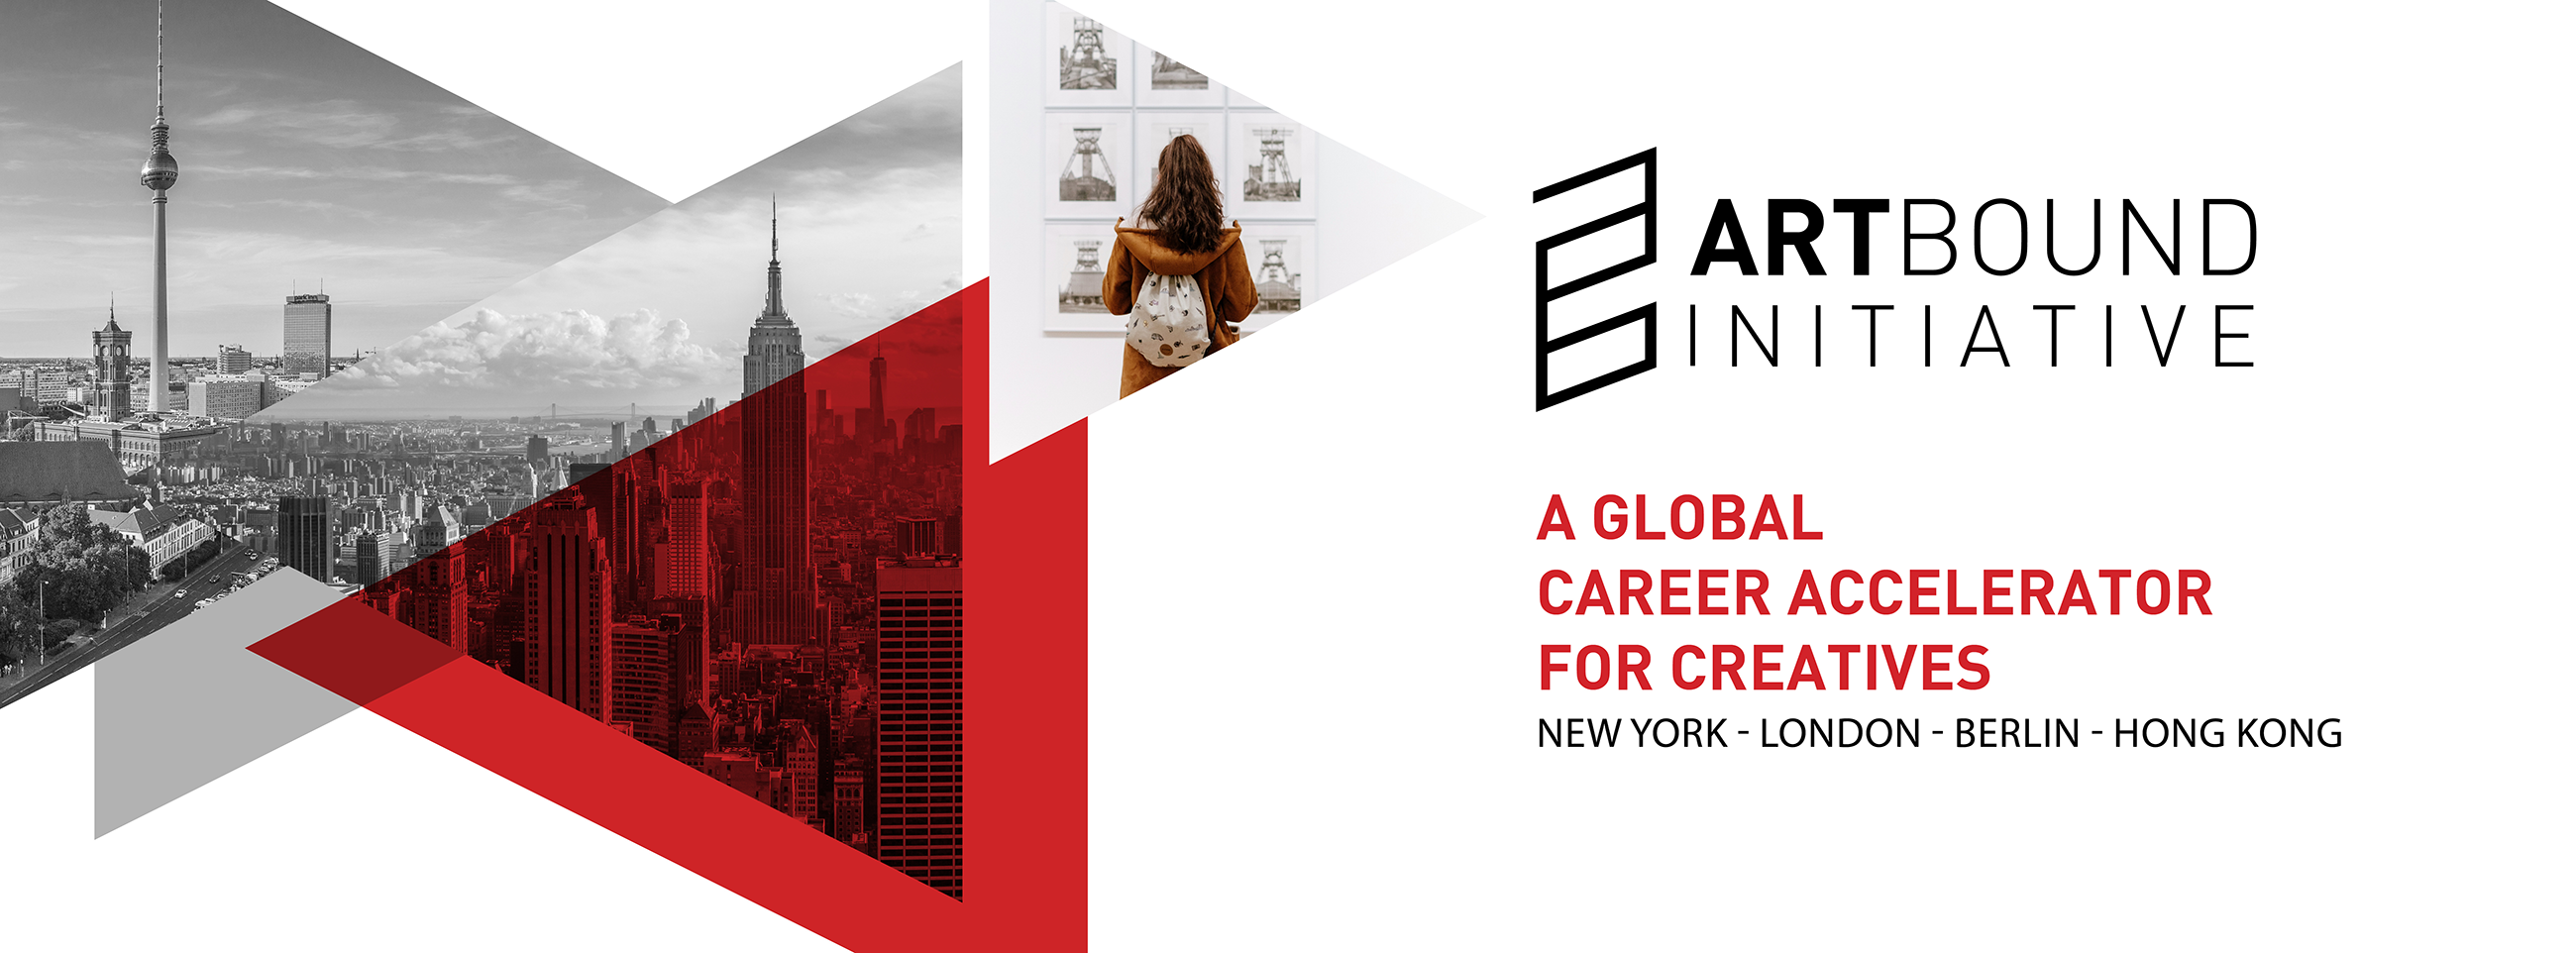 Artbound Initiative photograph showing New York, Berling, Hong Kong photos, a global career accelerator for creatives